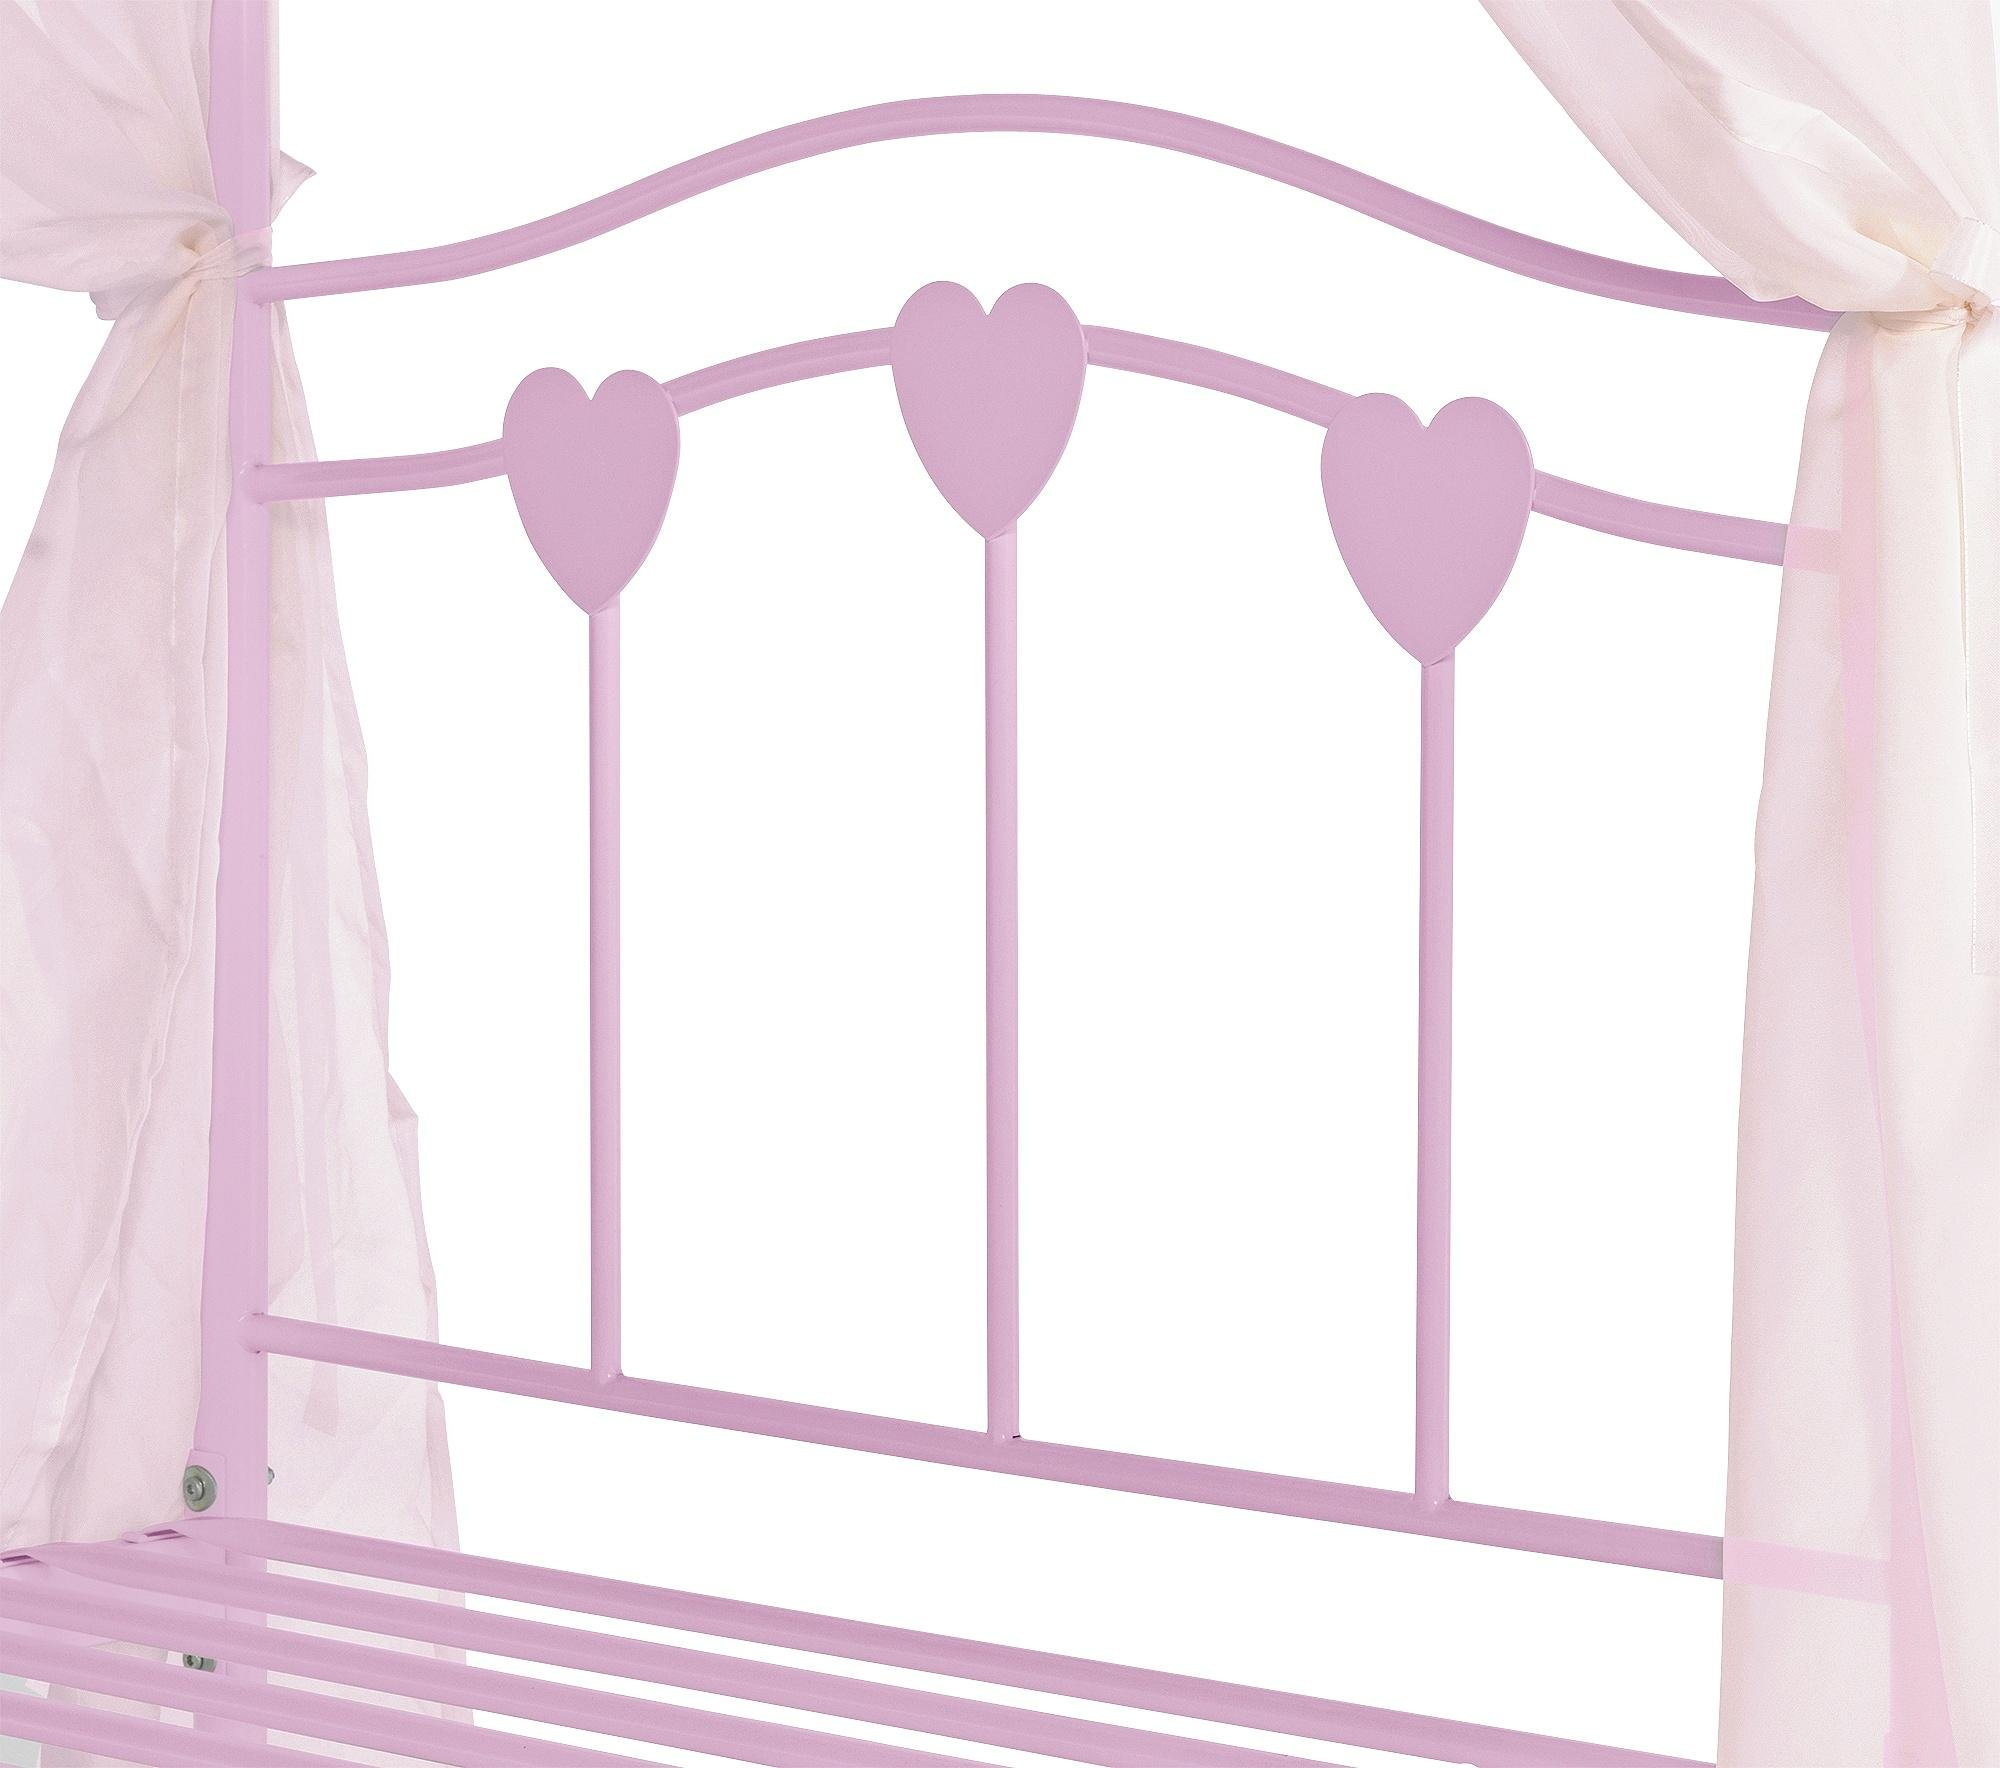 Pink 4 Poster Bed Buy Home Hearts Single 4 Poster Bed Frame  Pink At Argos.co.uk .